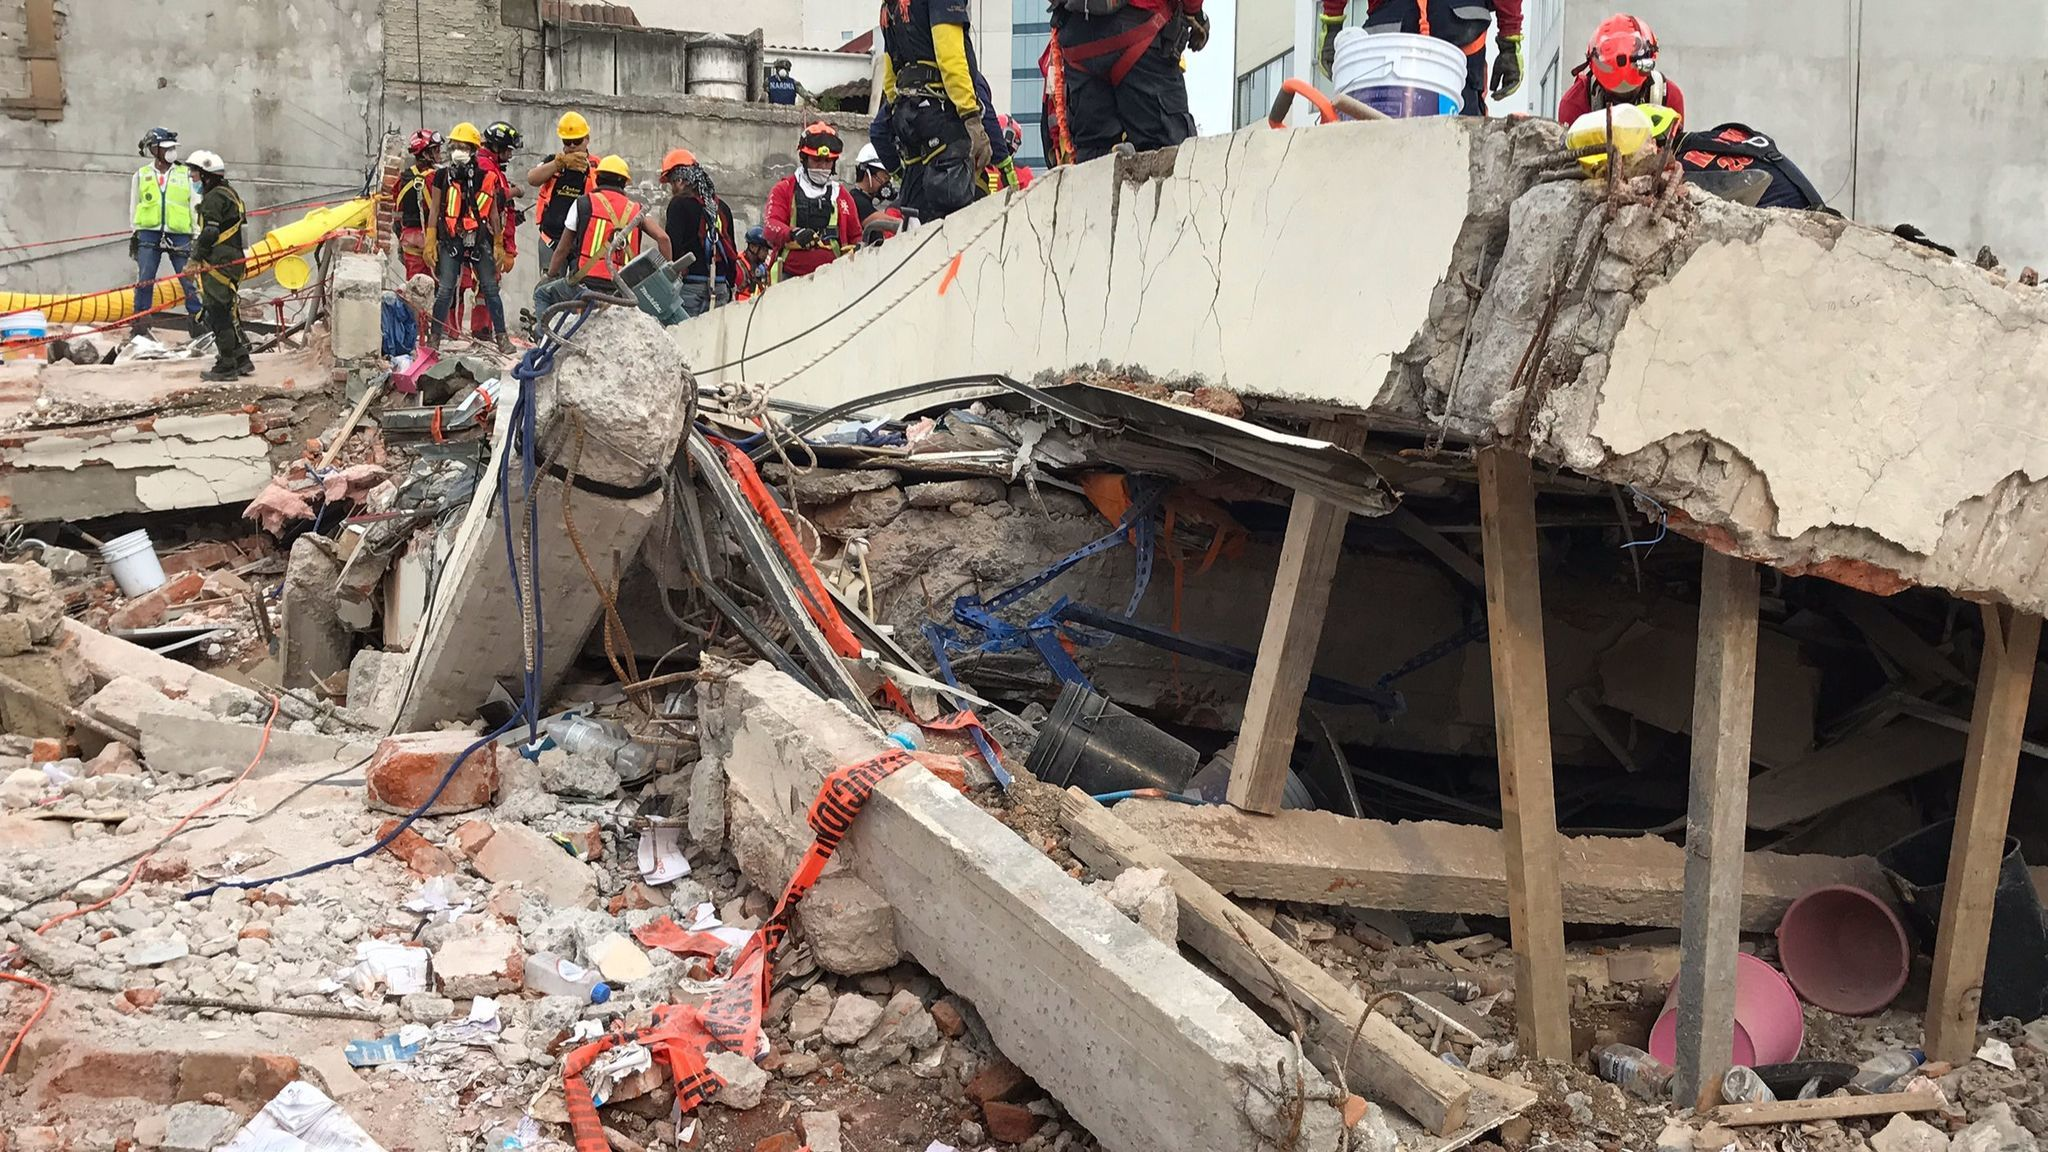 A Mexico City office building collapsed in the Sept. 19, 2017, earthquake, leaving entire floors stacked like pancakes. (Credit: Rong-Gong Lin II / Los Angeles Times)